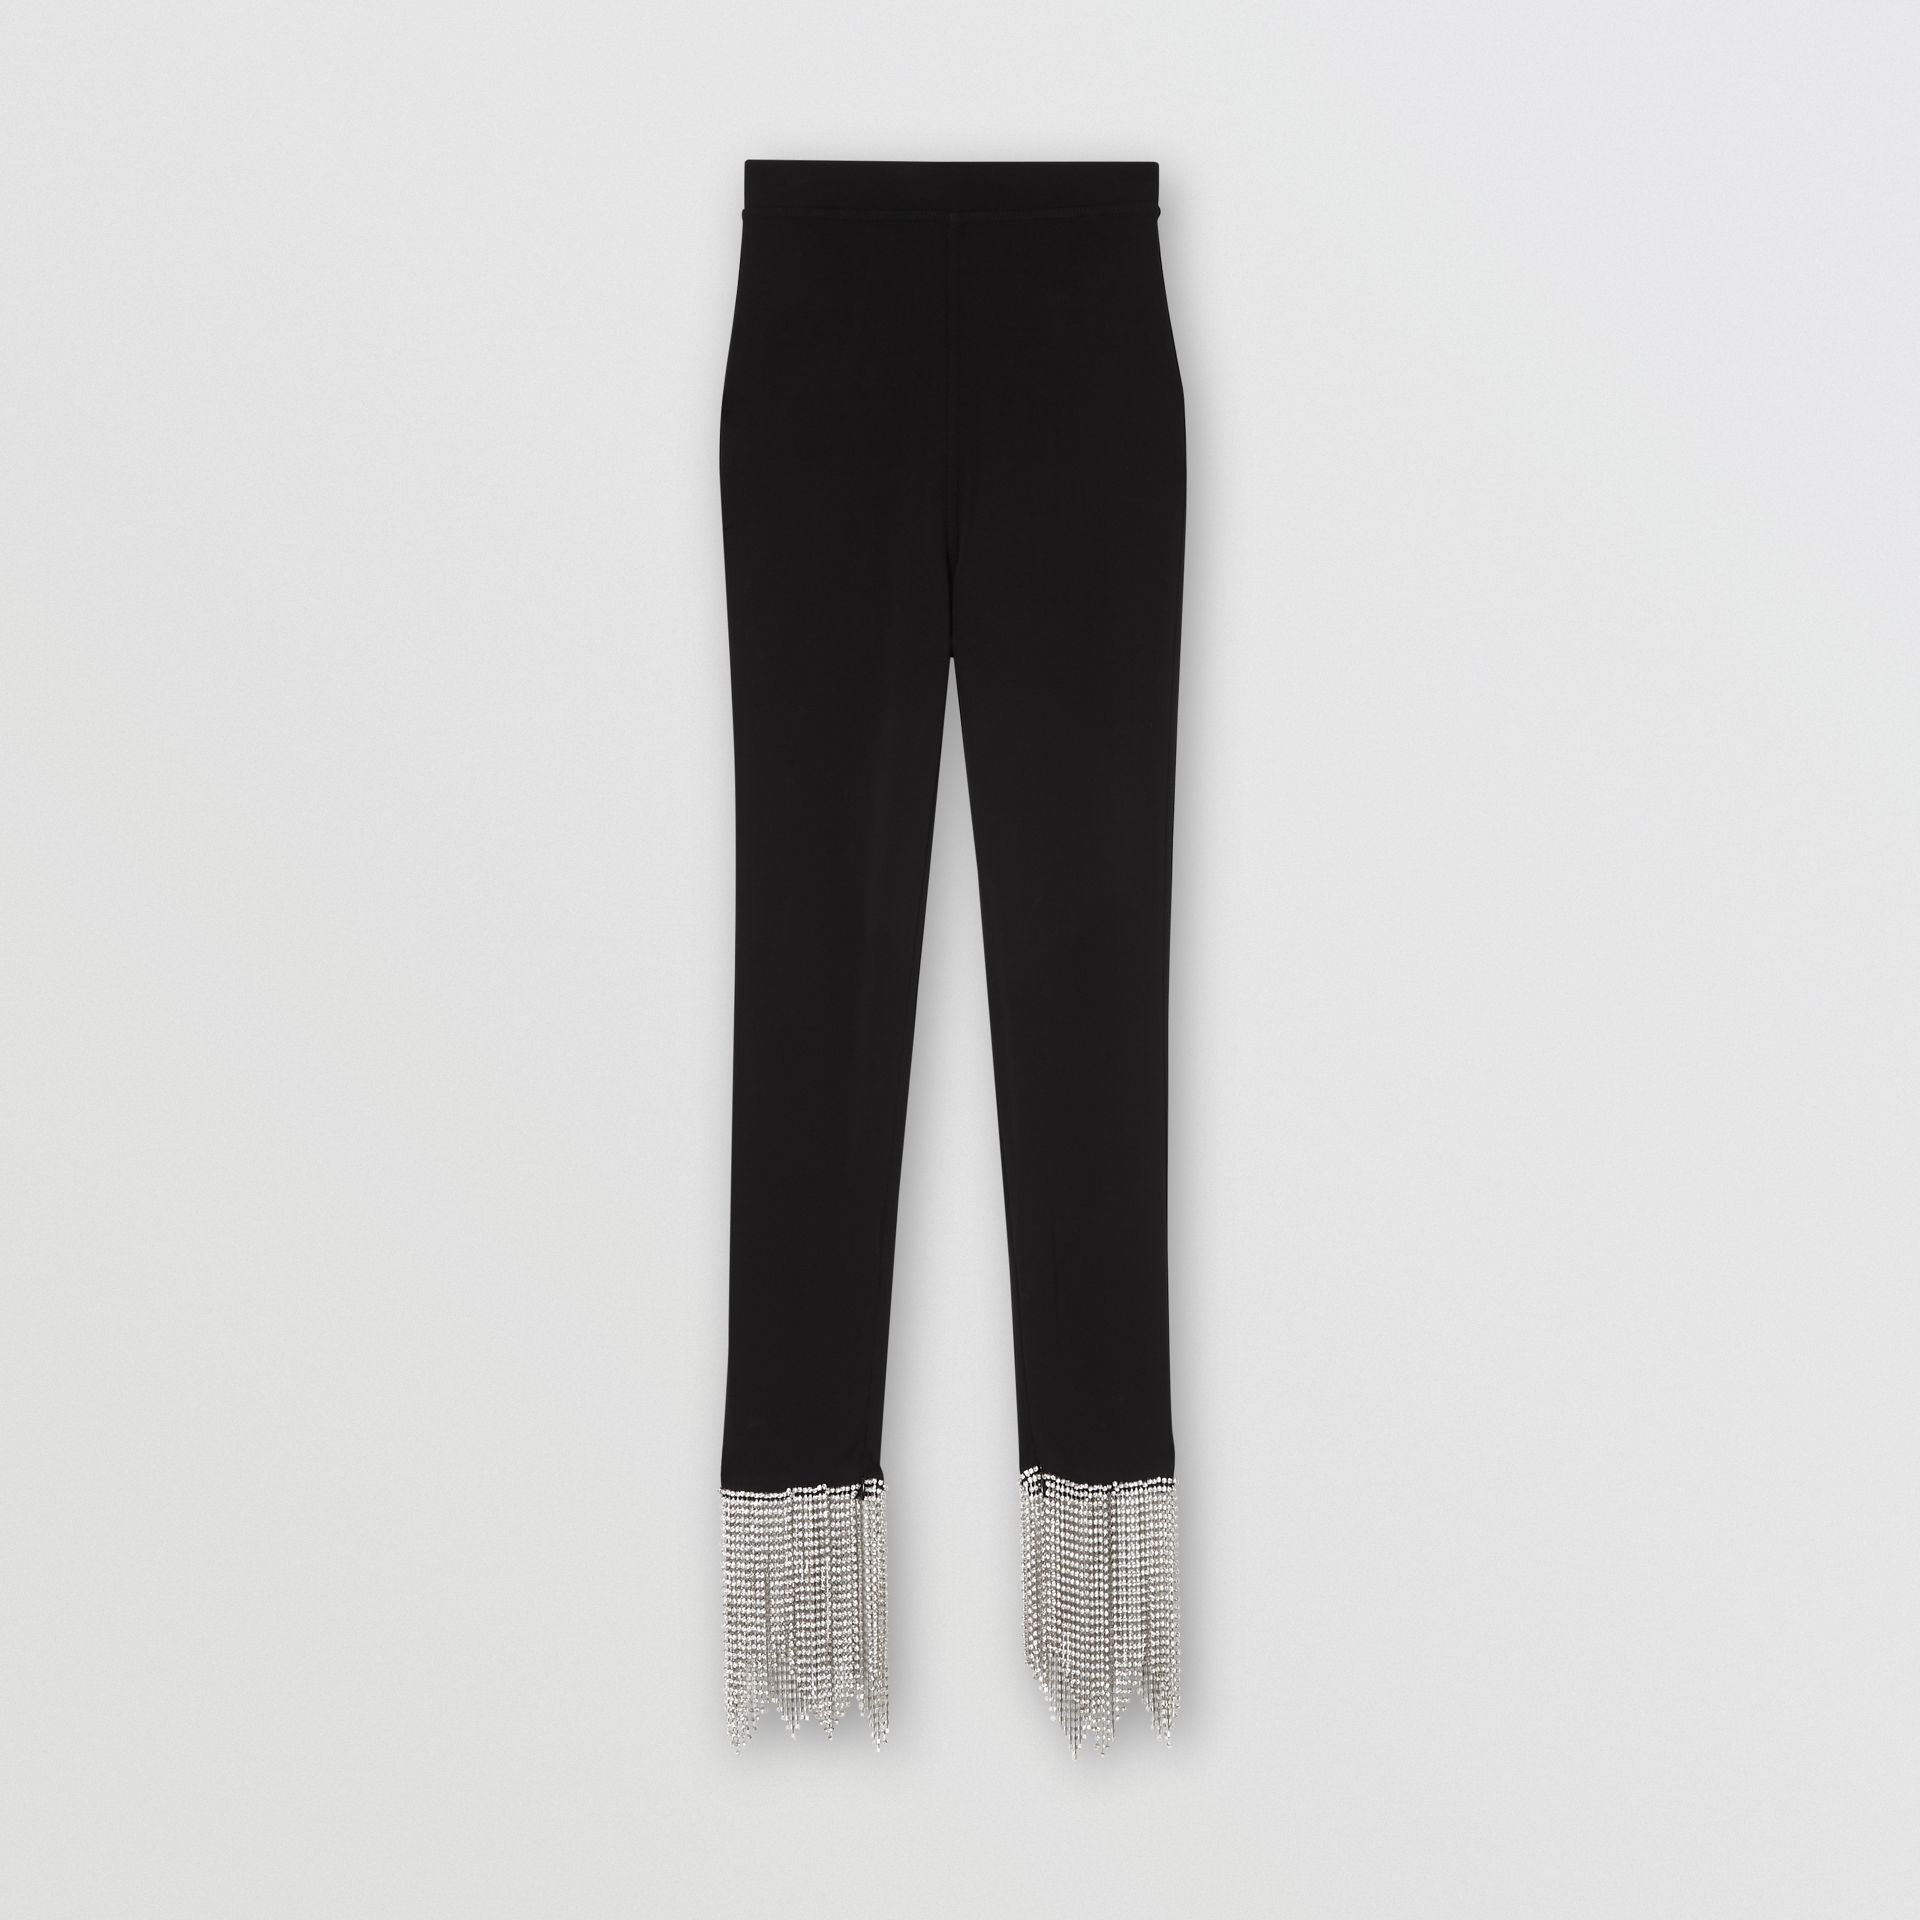 Crystal Fringe Detail Stretch Jersey Leggings in Black - Women | Burberry - gallery image 3